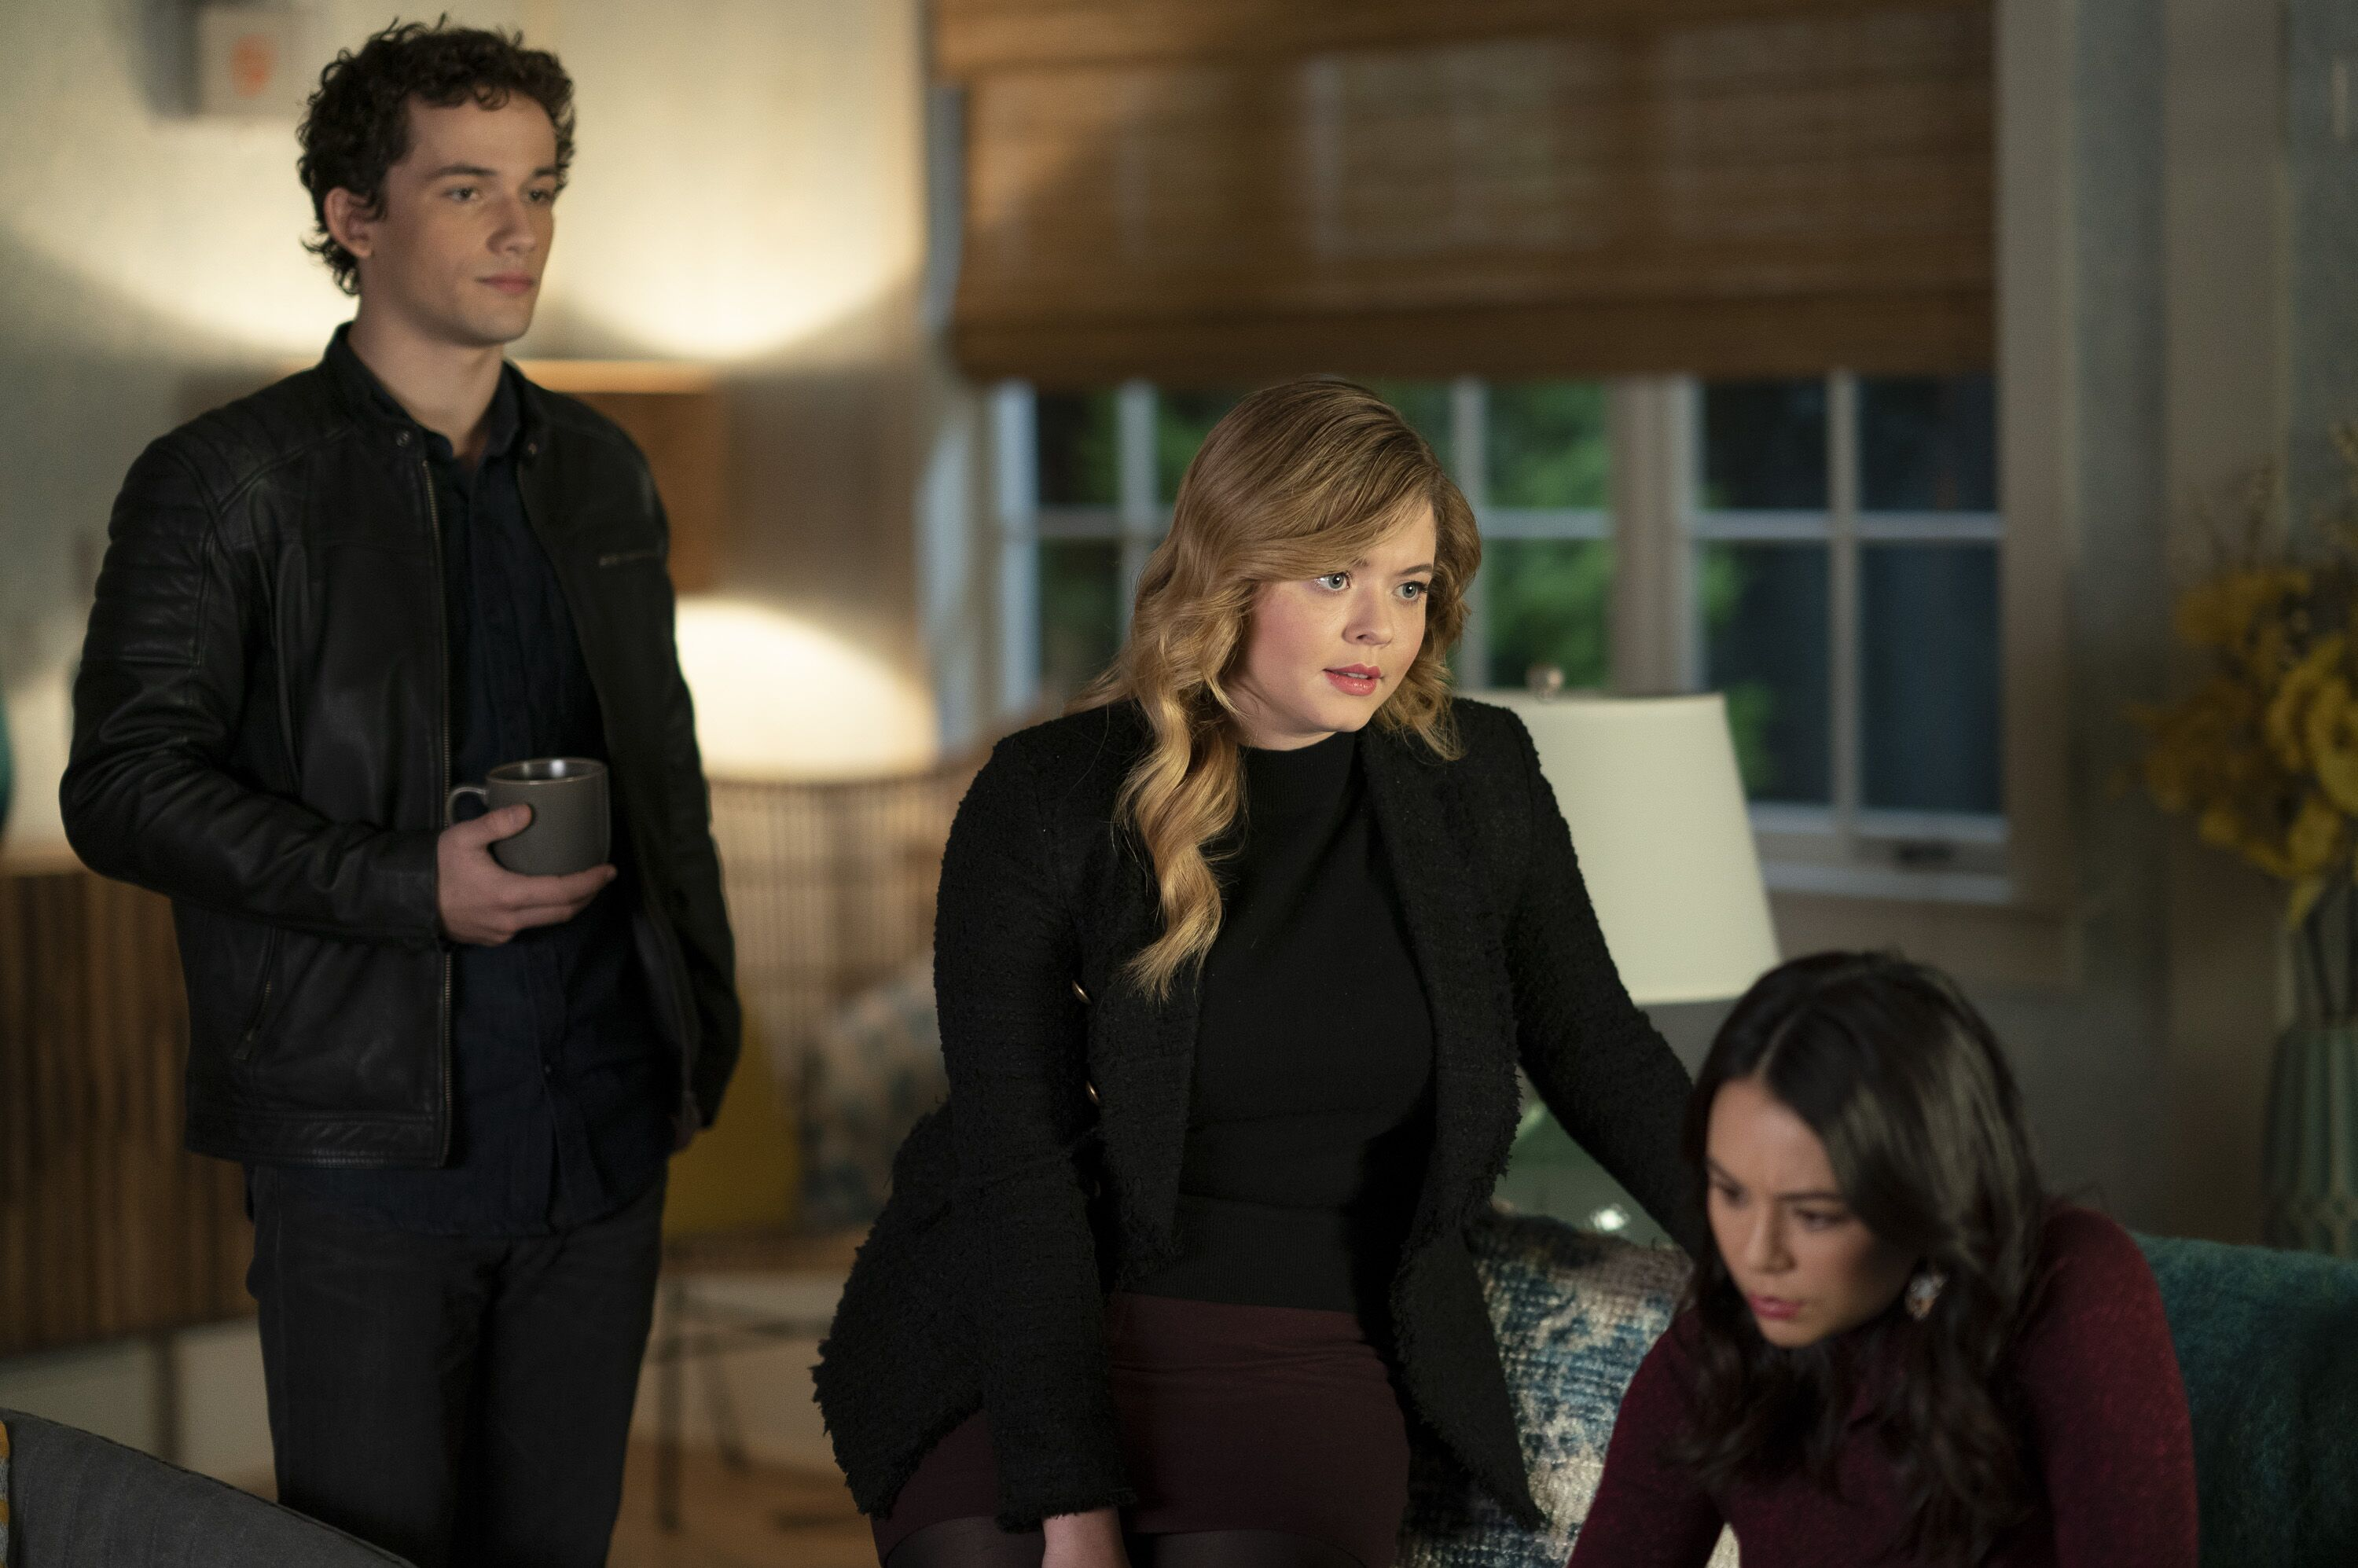 PLL: The Perfectionists Season 1 finale recap: Who is the Professor?